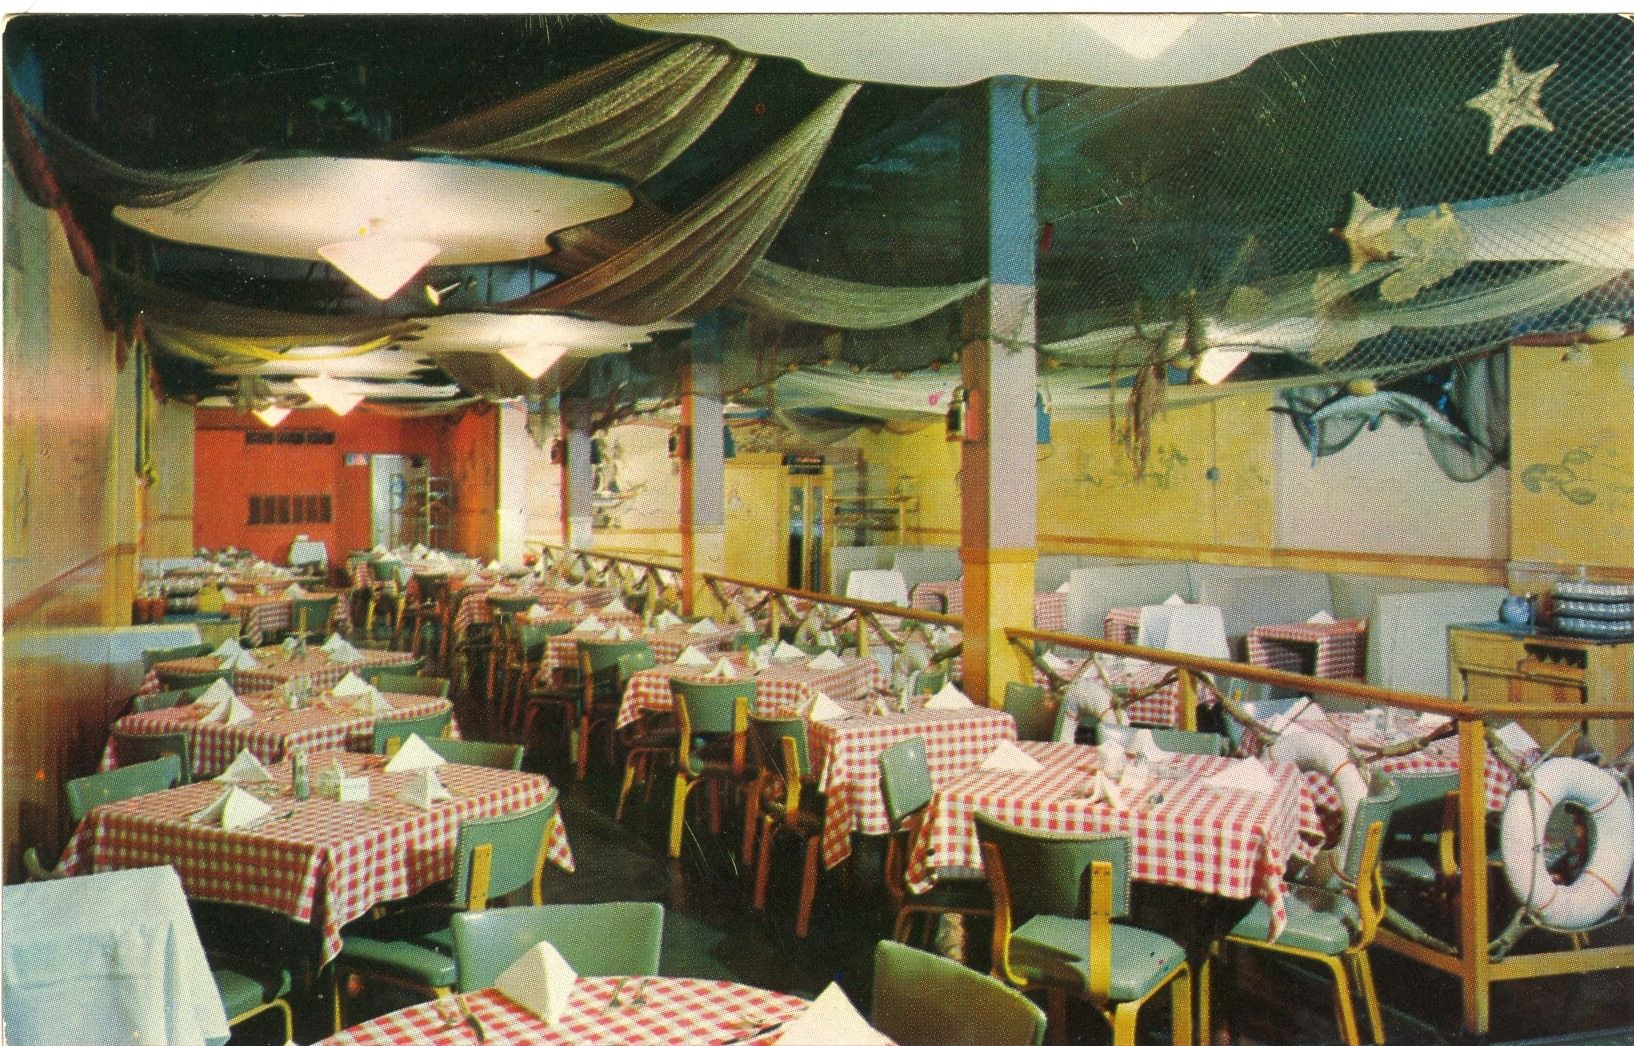 "Seafood Bay at 179 N. High Street.  ""Ohio's Great Steak and Lobster House""  Friendly service - diverting tidewater atmosphere. Live fish and turtle swim in our window aquarium.  Courtesy of Columbus Landmarks Foundation and the collection of Doreen Uhas Sauer."